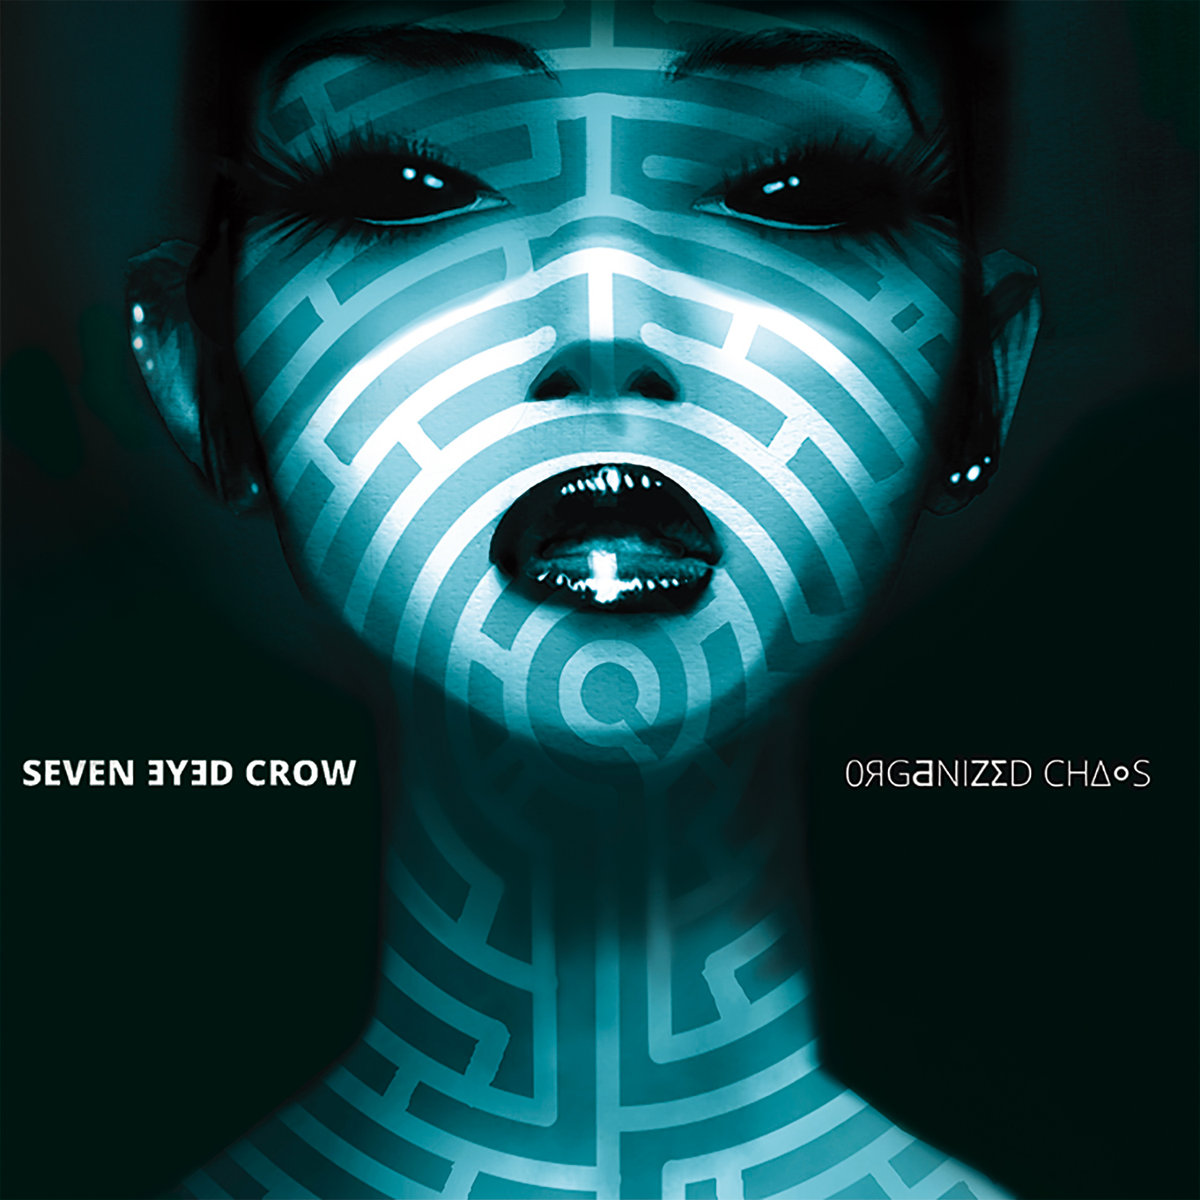 Seven Eyed Crow: Organized Chaos